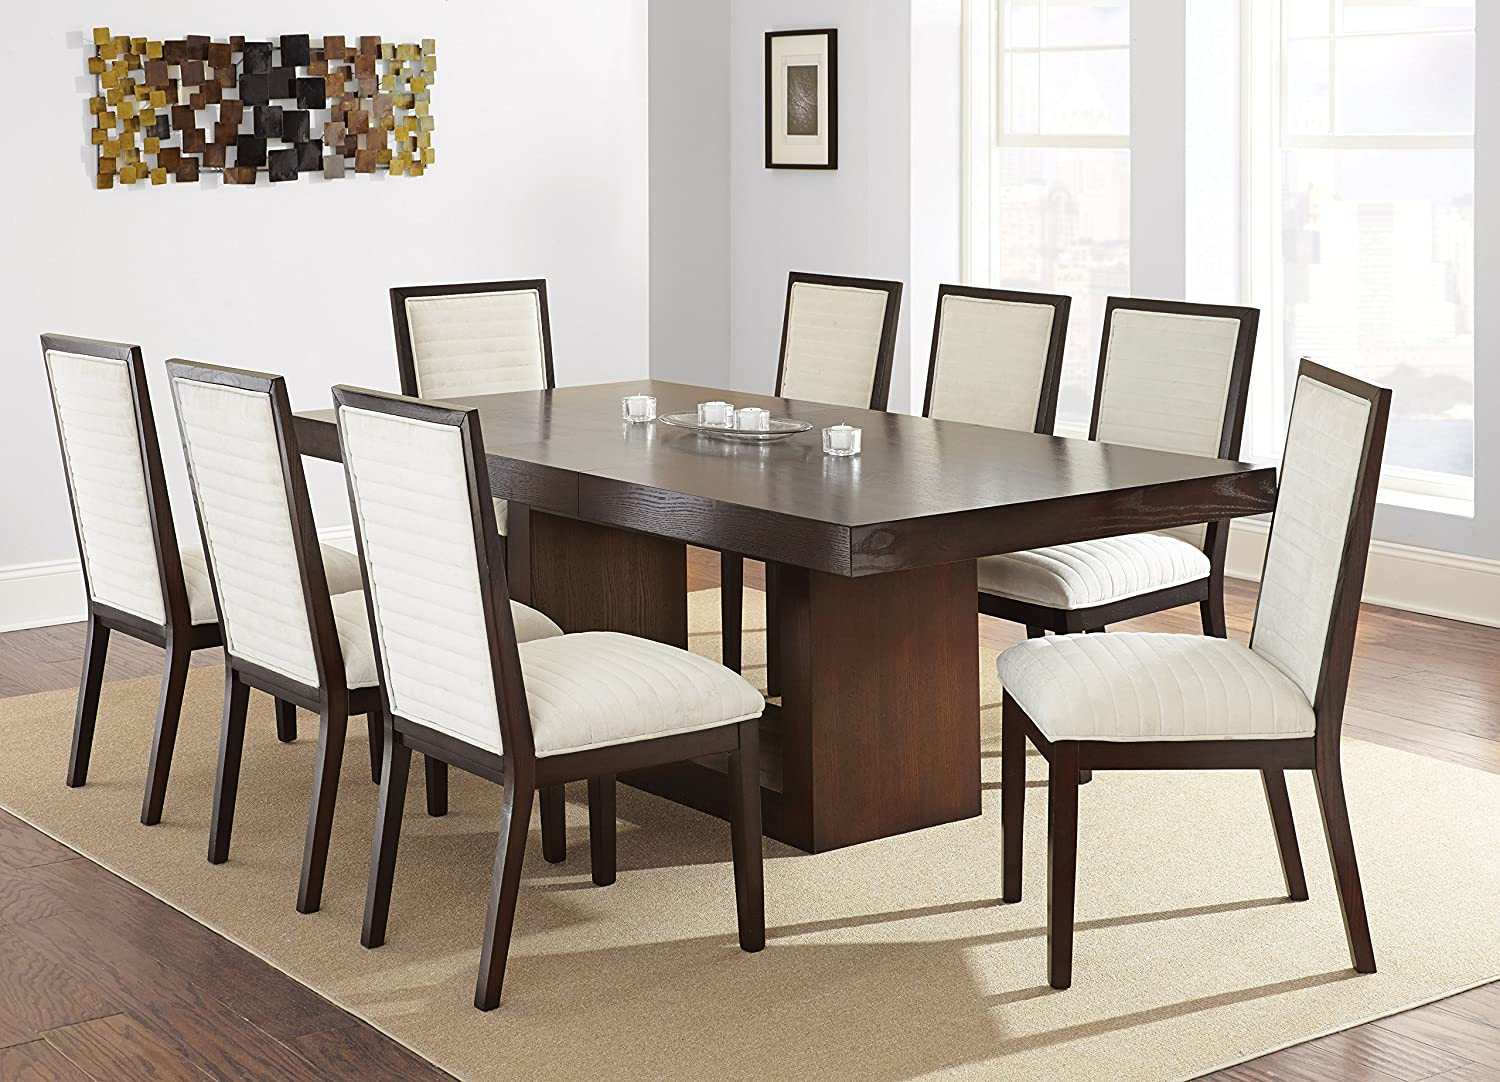 59246a modern dining table base - 59246a Modern Dining Table Base 10